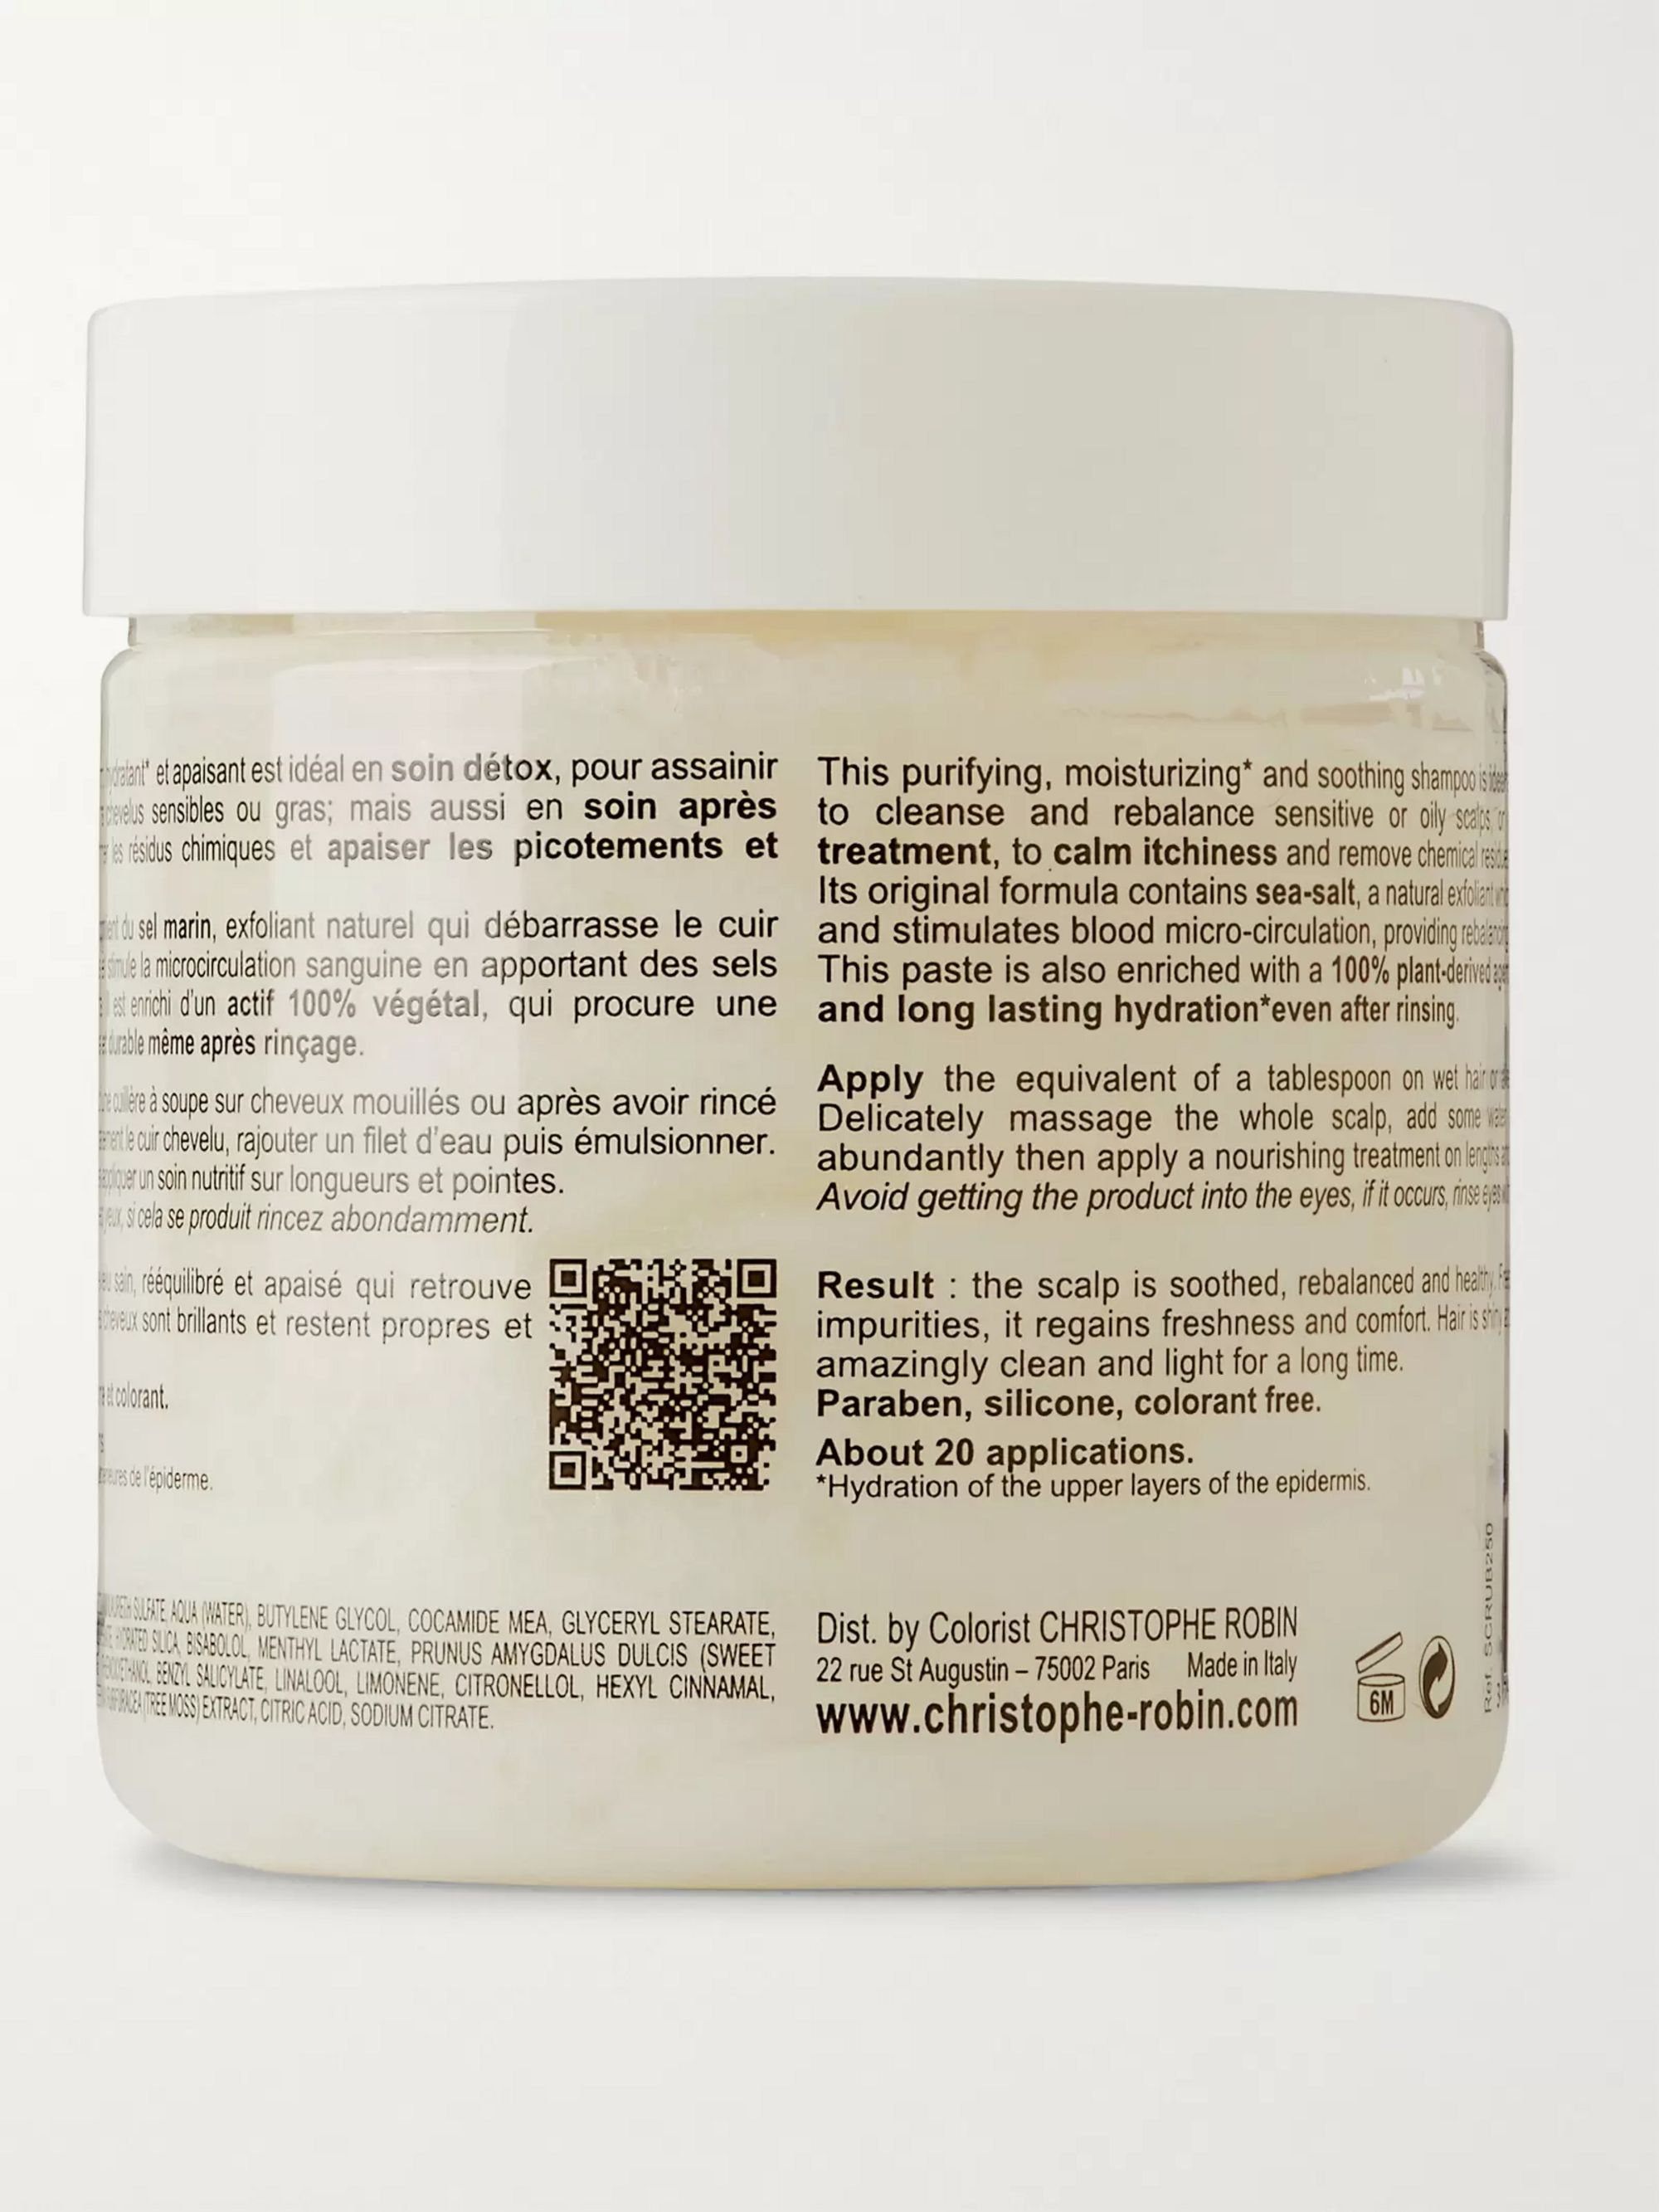 Christophe Robin Cleansing Purifying Scrub with Sea Salt, 250ml